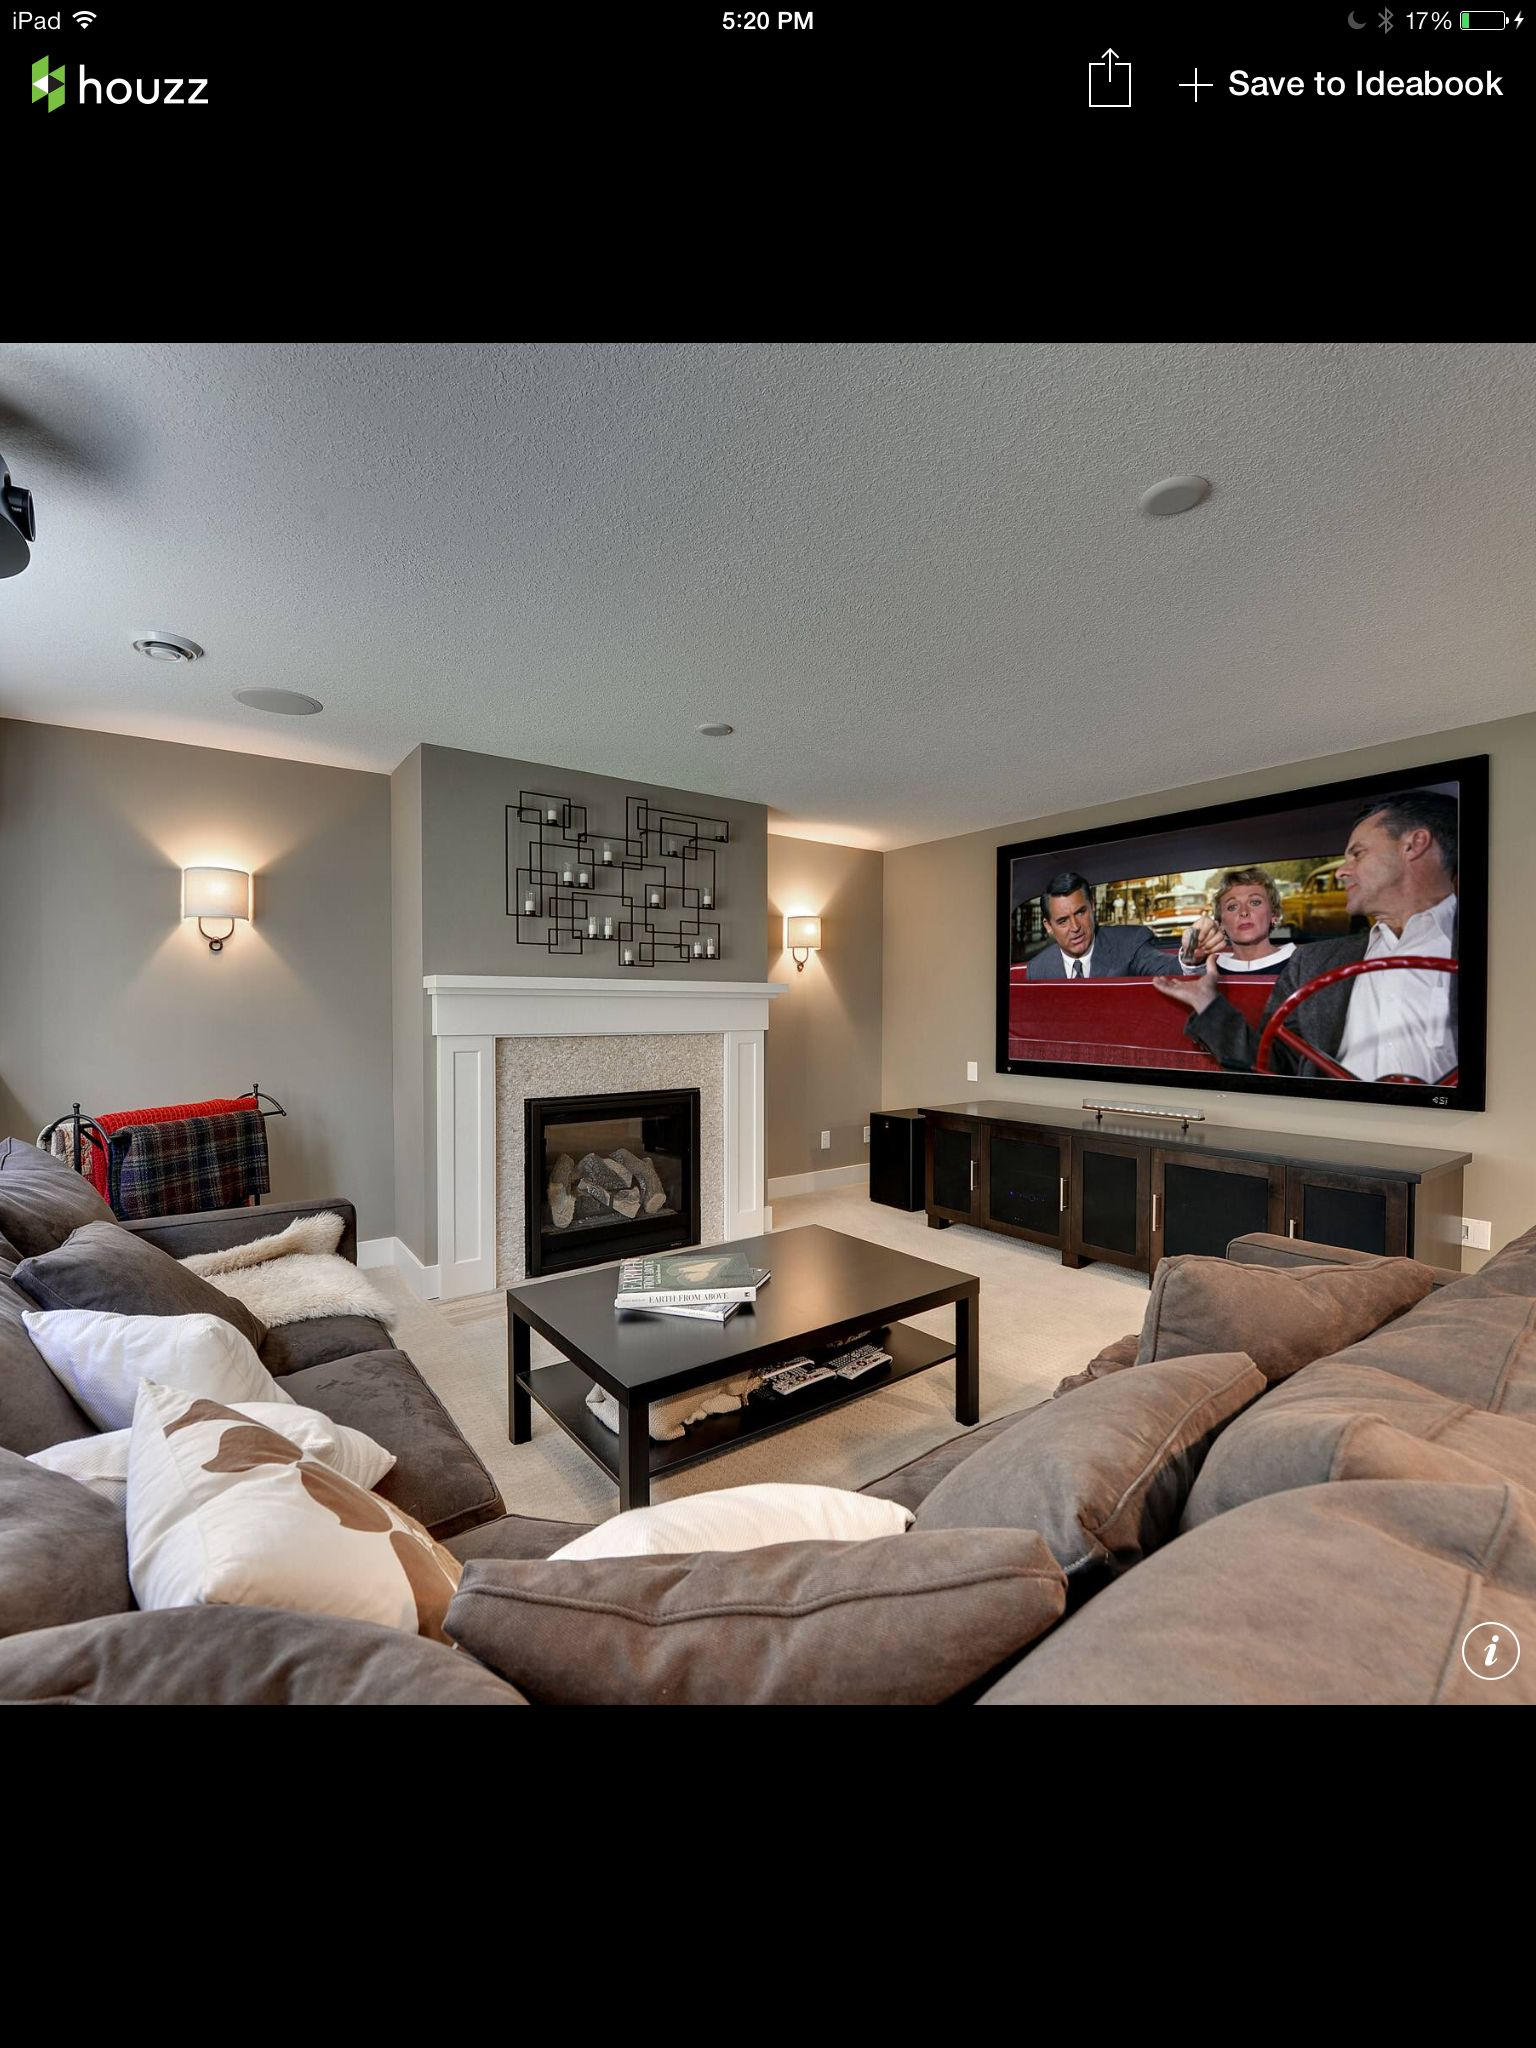 Basement Home The Big Comfy Couch Home Decor